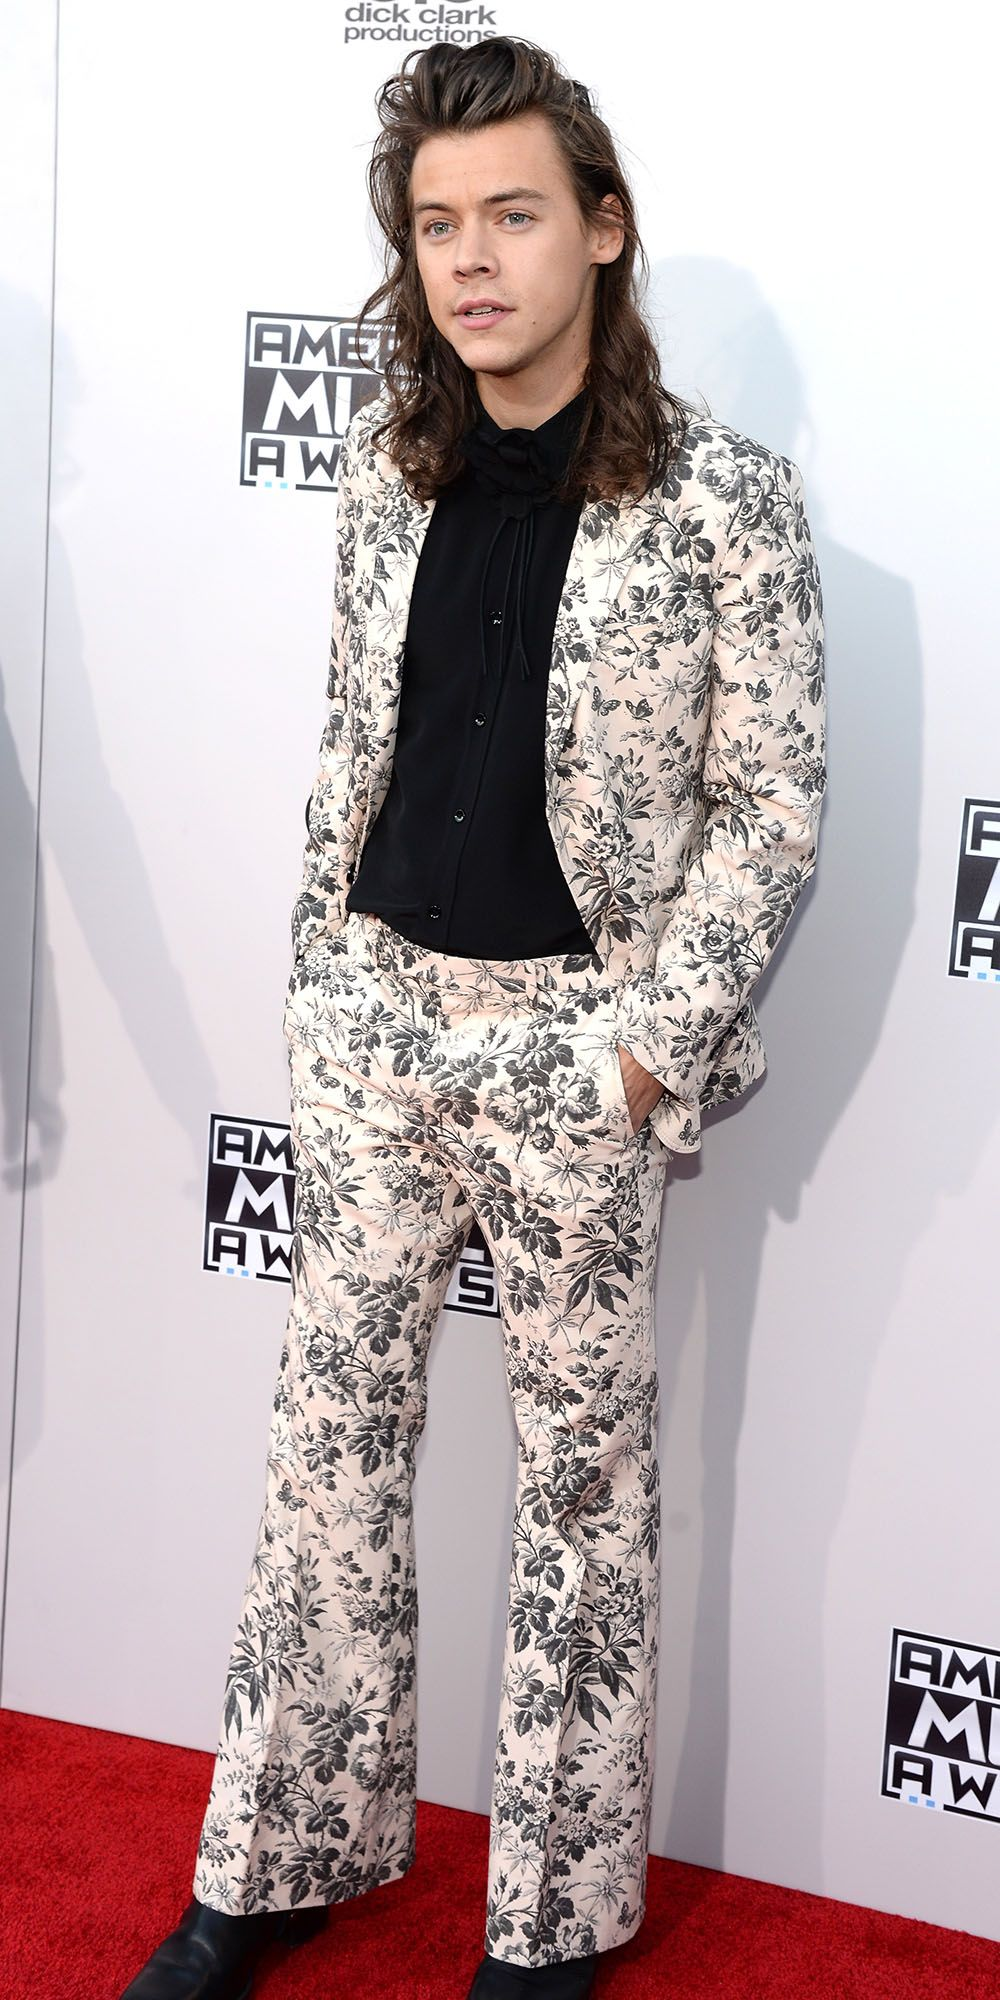 8060acddc69 The Most Sizzling Looks at the 2015 American Music Awards - Harry Styles -  from InStyle.com